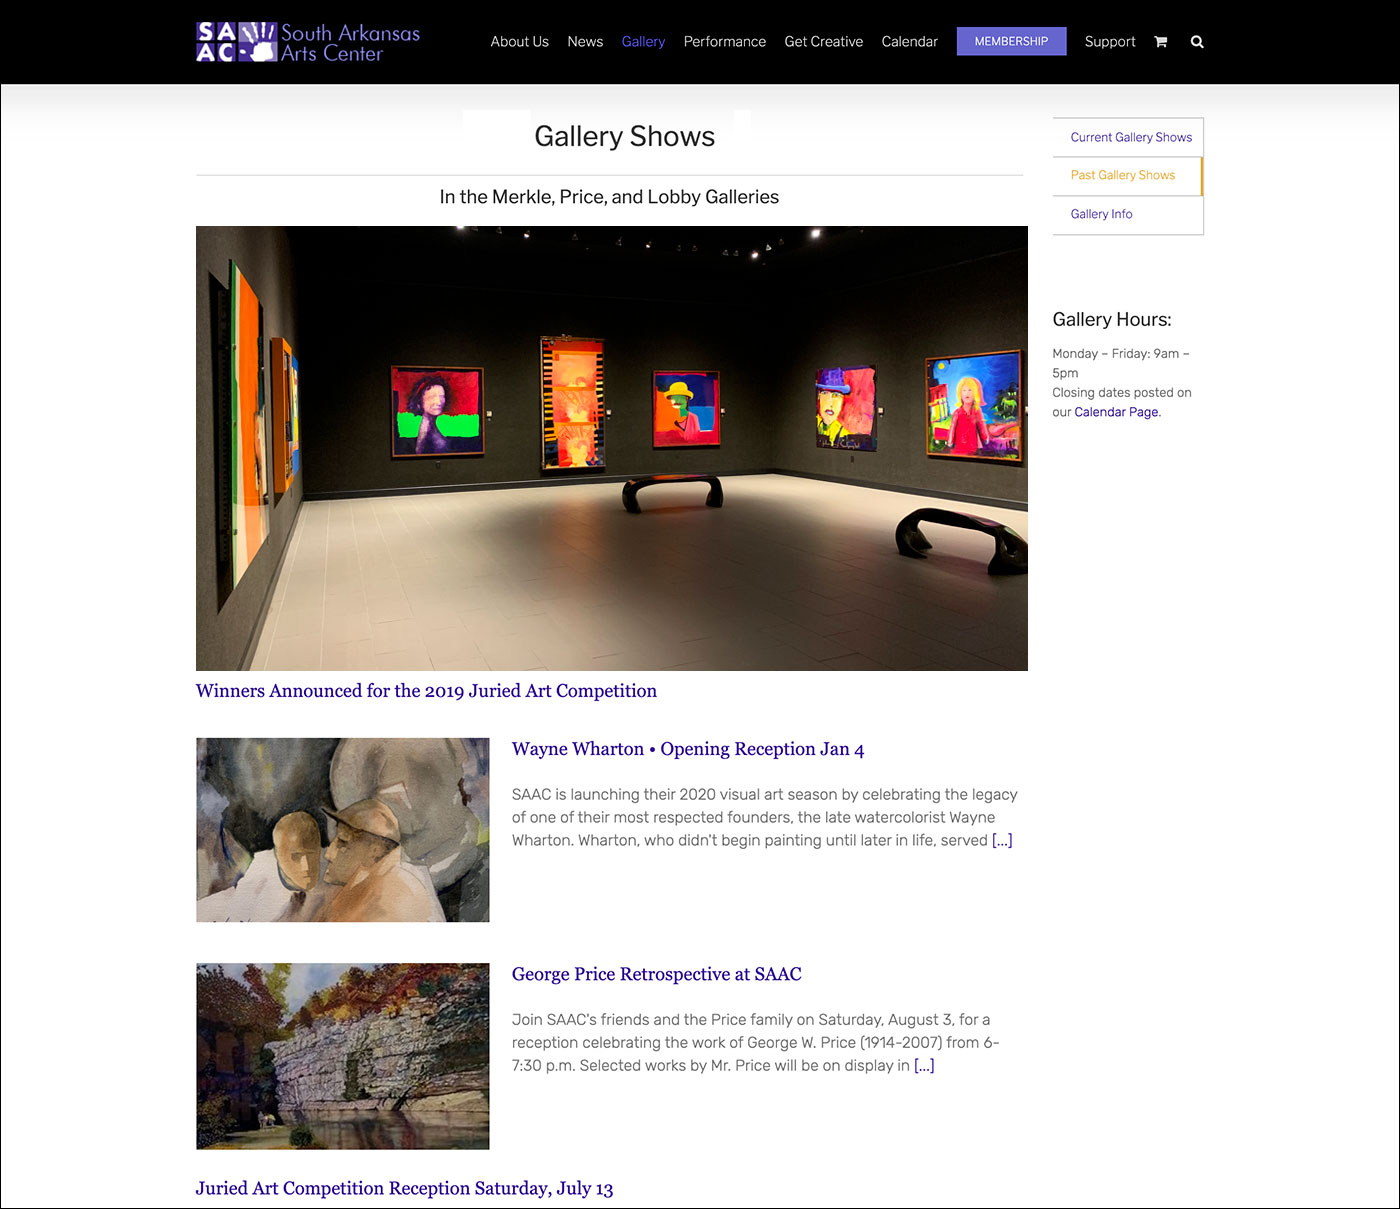 South Arkansas Arts Center - Gallery